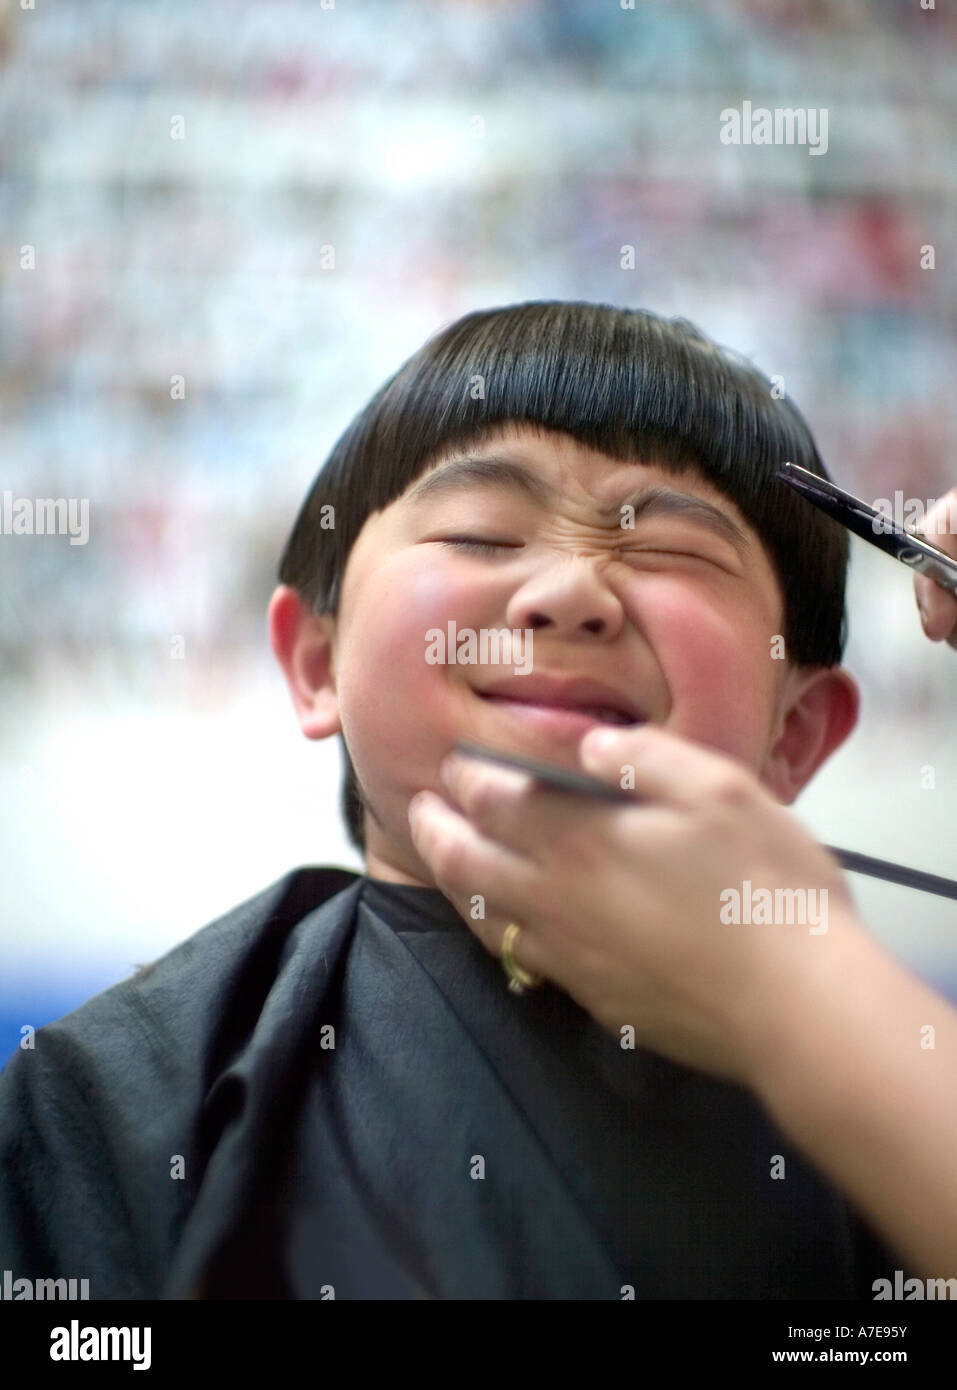 Boy reluctantly gets a haircut. - Stock Image